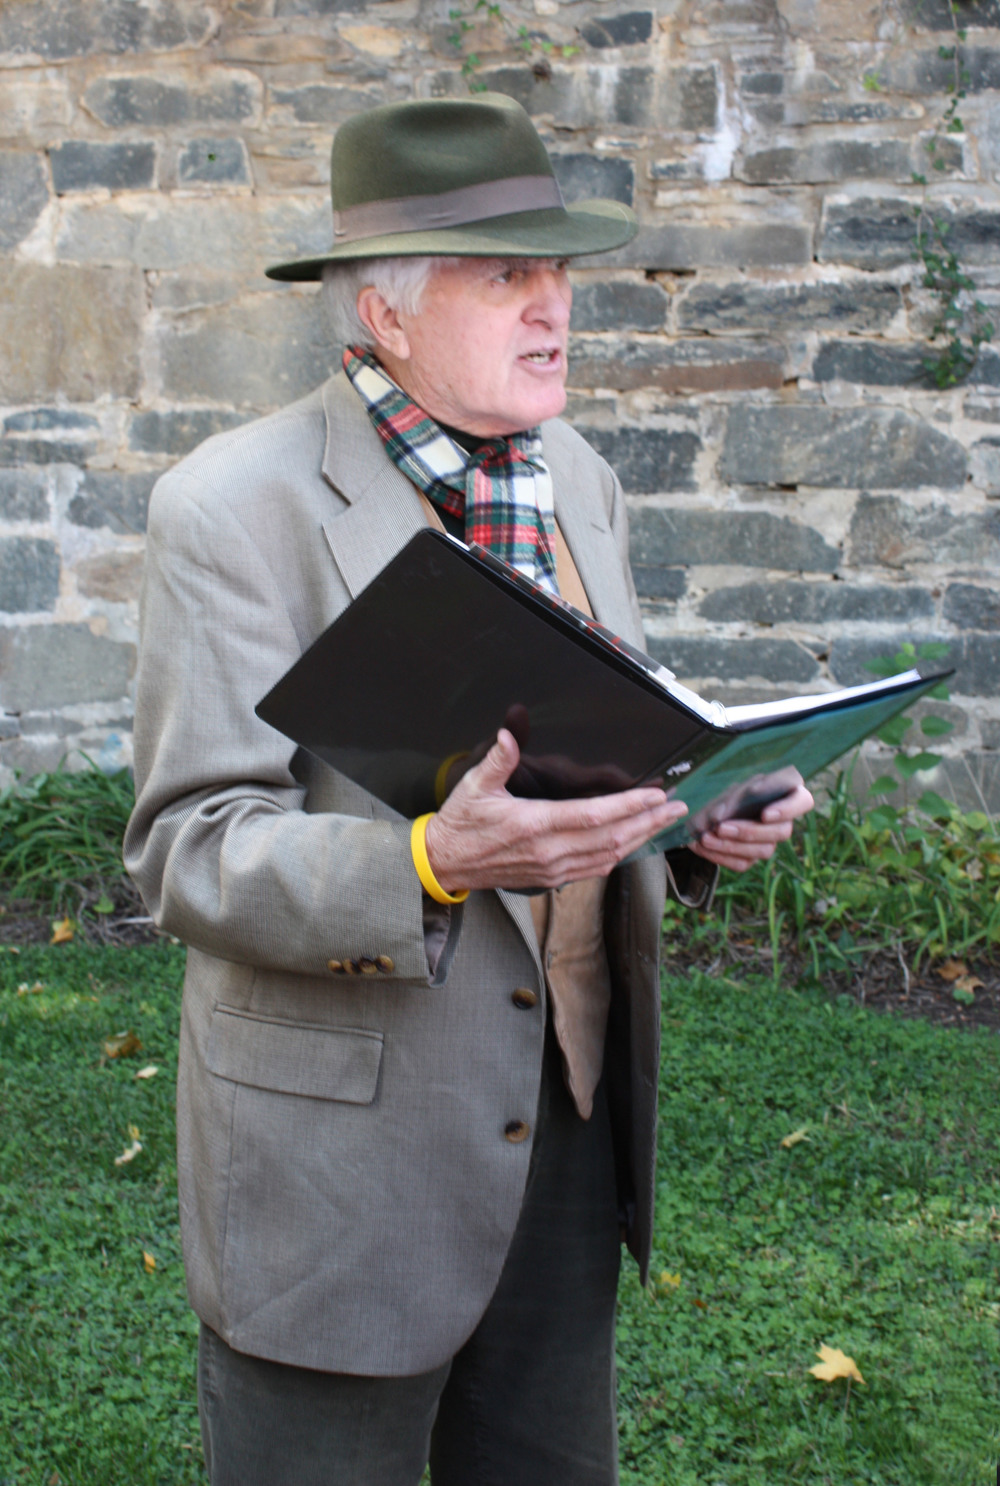 Professional tour guide and Burleith resident Dwane Starlin also portrays Mark Twain, John Philip Sousa, Robert Frost, and Joseph Henry, the first secretary of the Smithsonian. photo by ann carper.